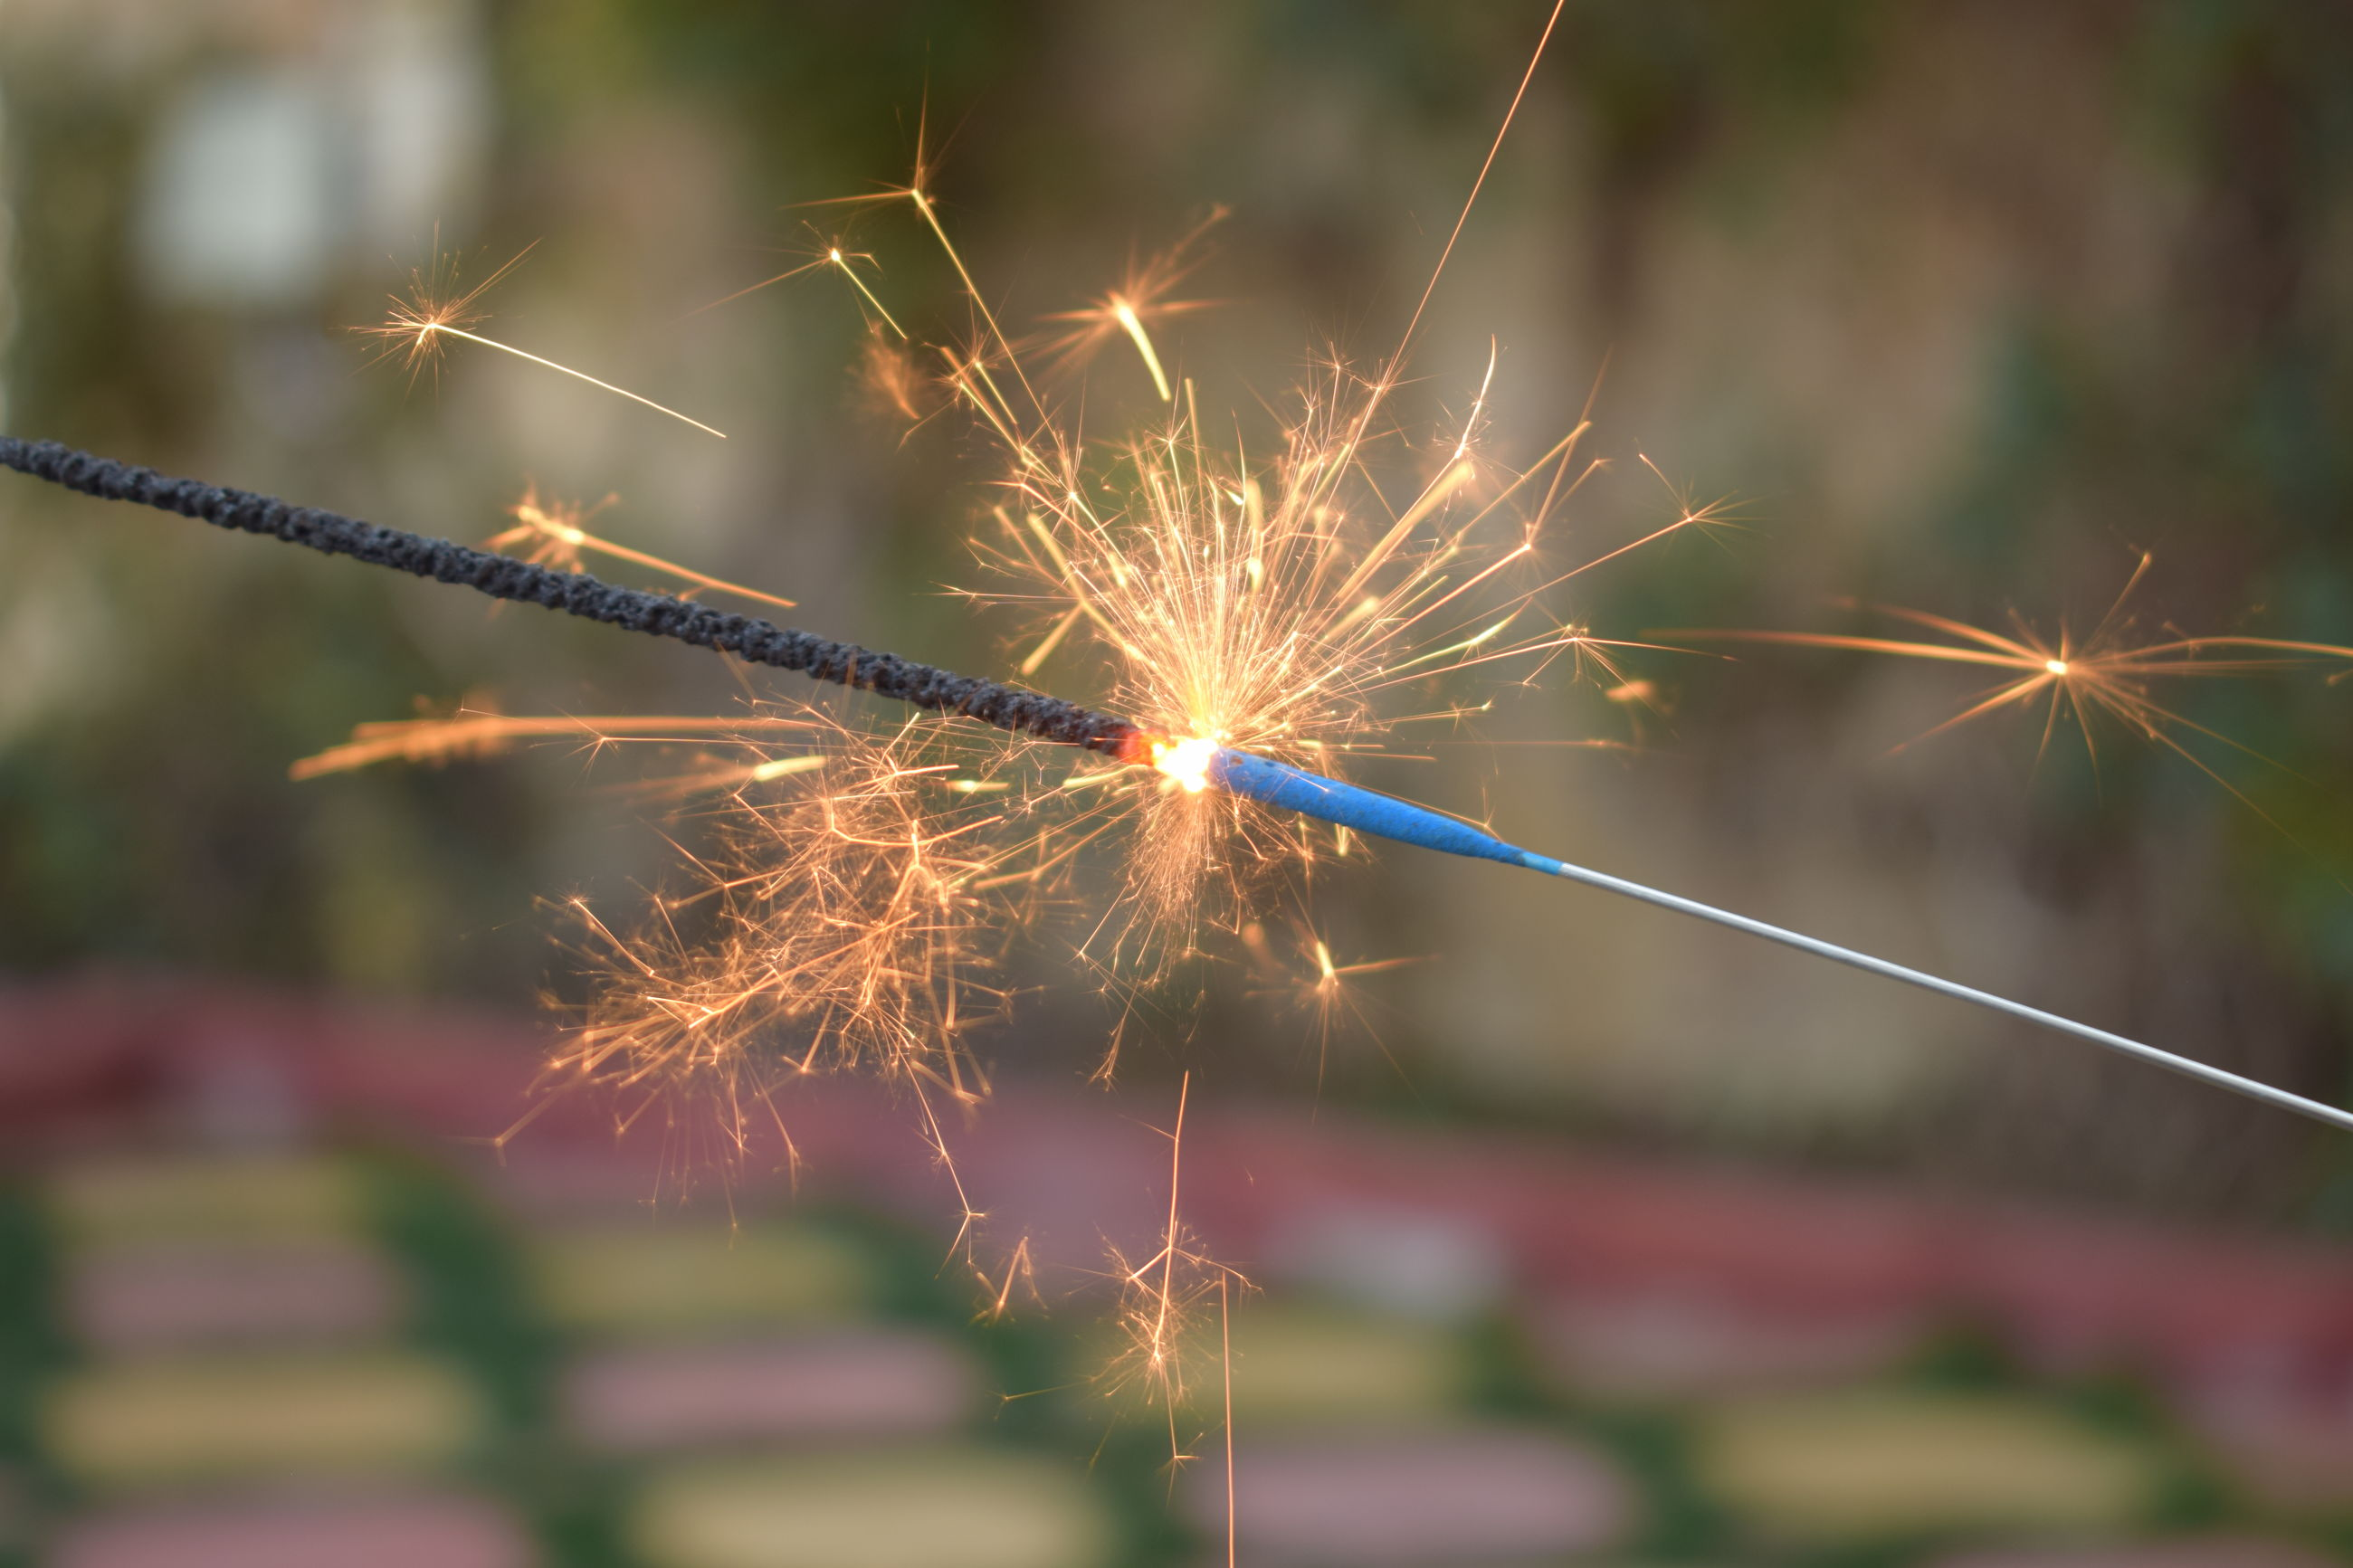 firework - man made object, celebration, focus on foreground, outdoors, no people, firework display, sparkler, plant, close-up, nature, day, sky